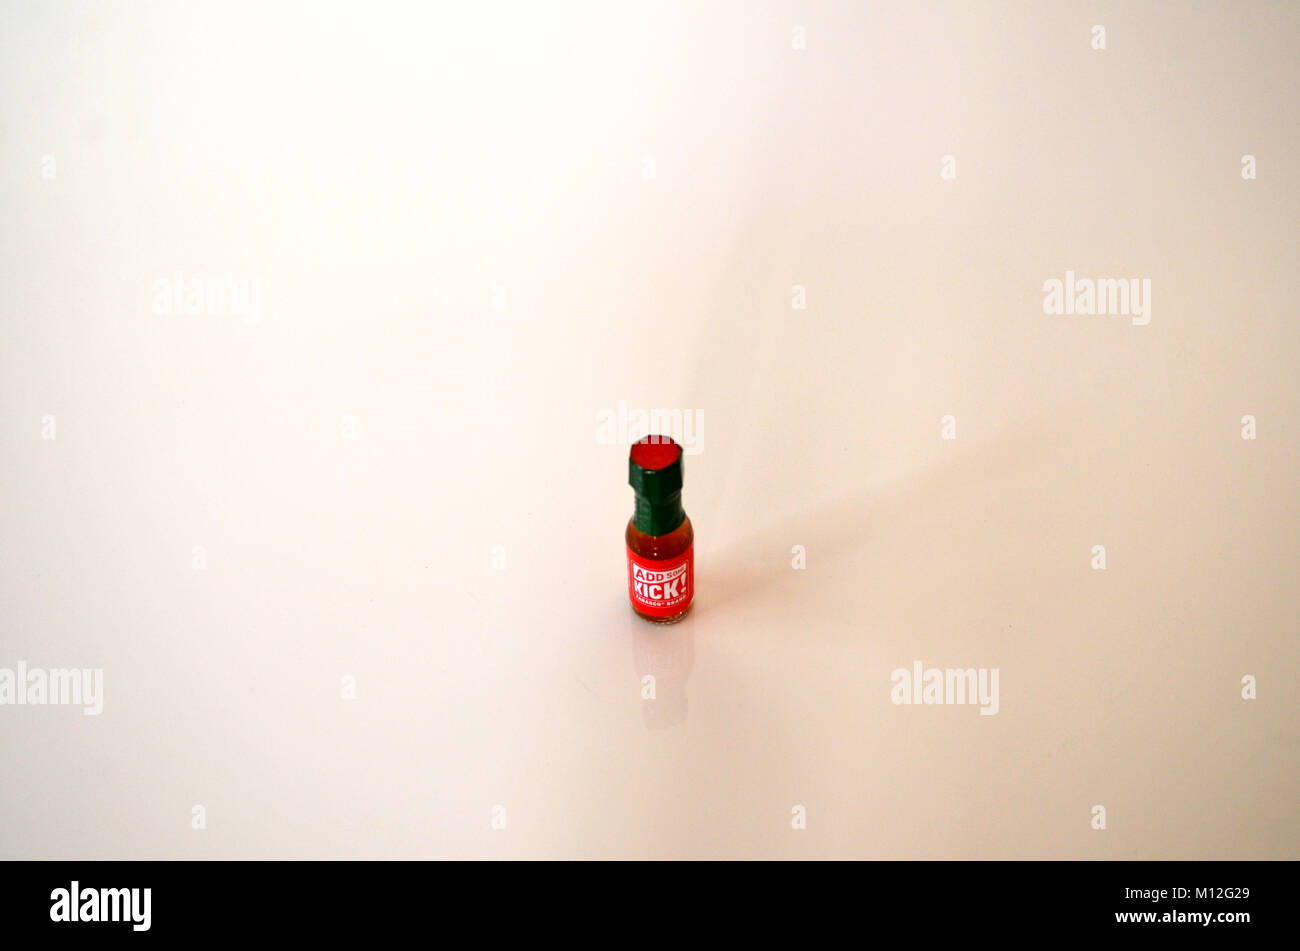 Small bottle of sauce isolated on white background - Stock Image